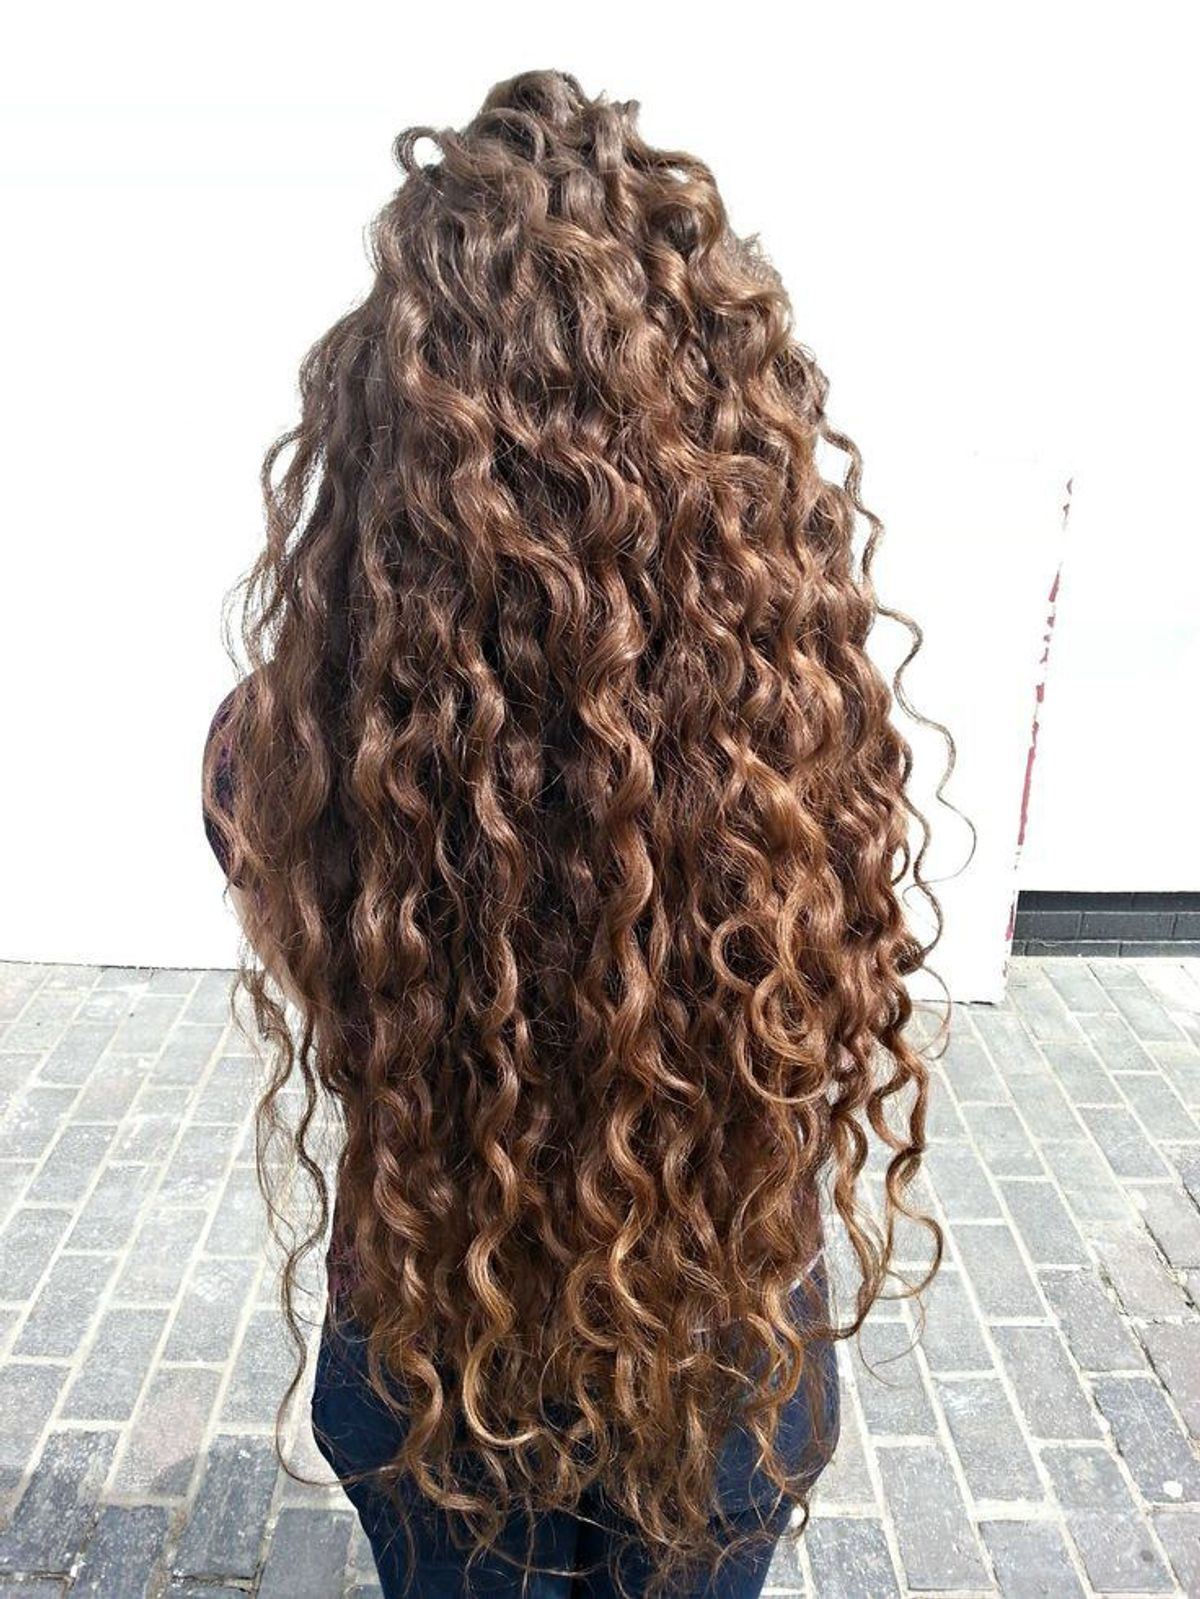 12 Things People With Curly Hair Are Tired of Hearing